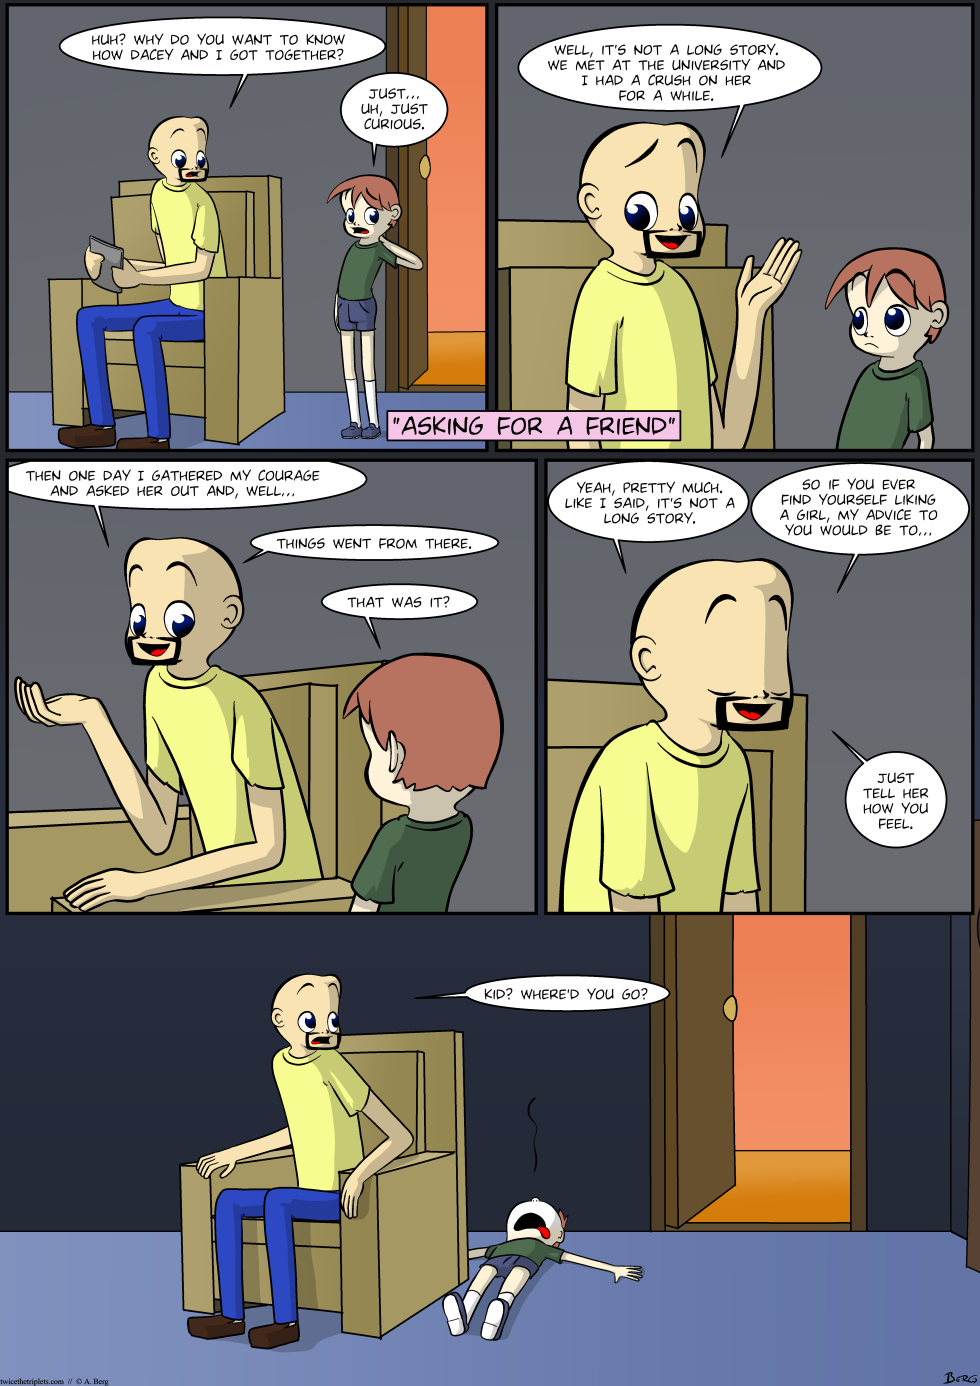 RIP Sean. Man, people are just dropping like flies in this comic, aren't they.